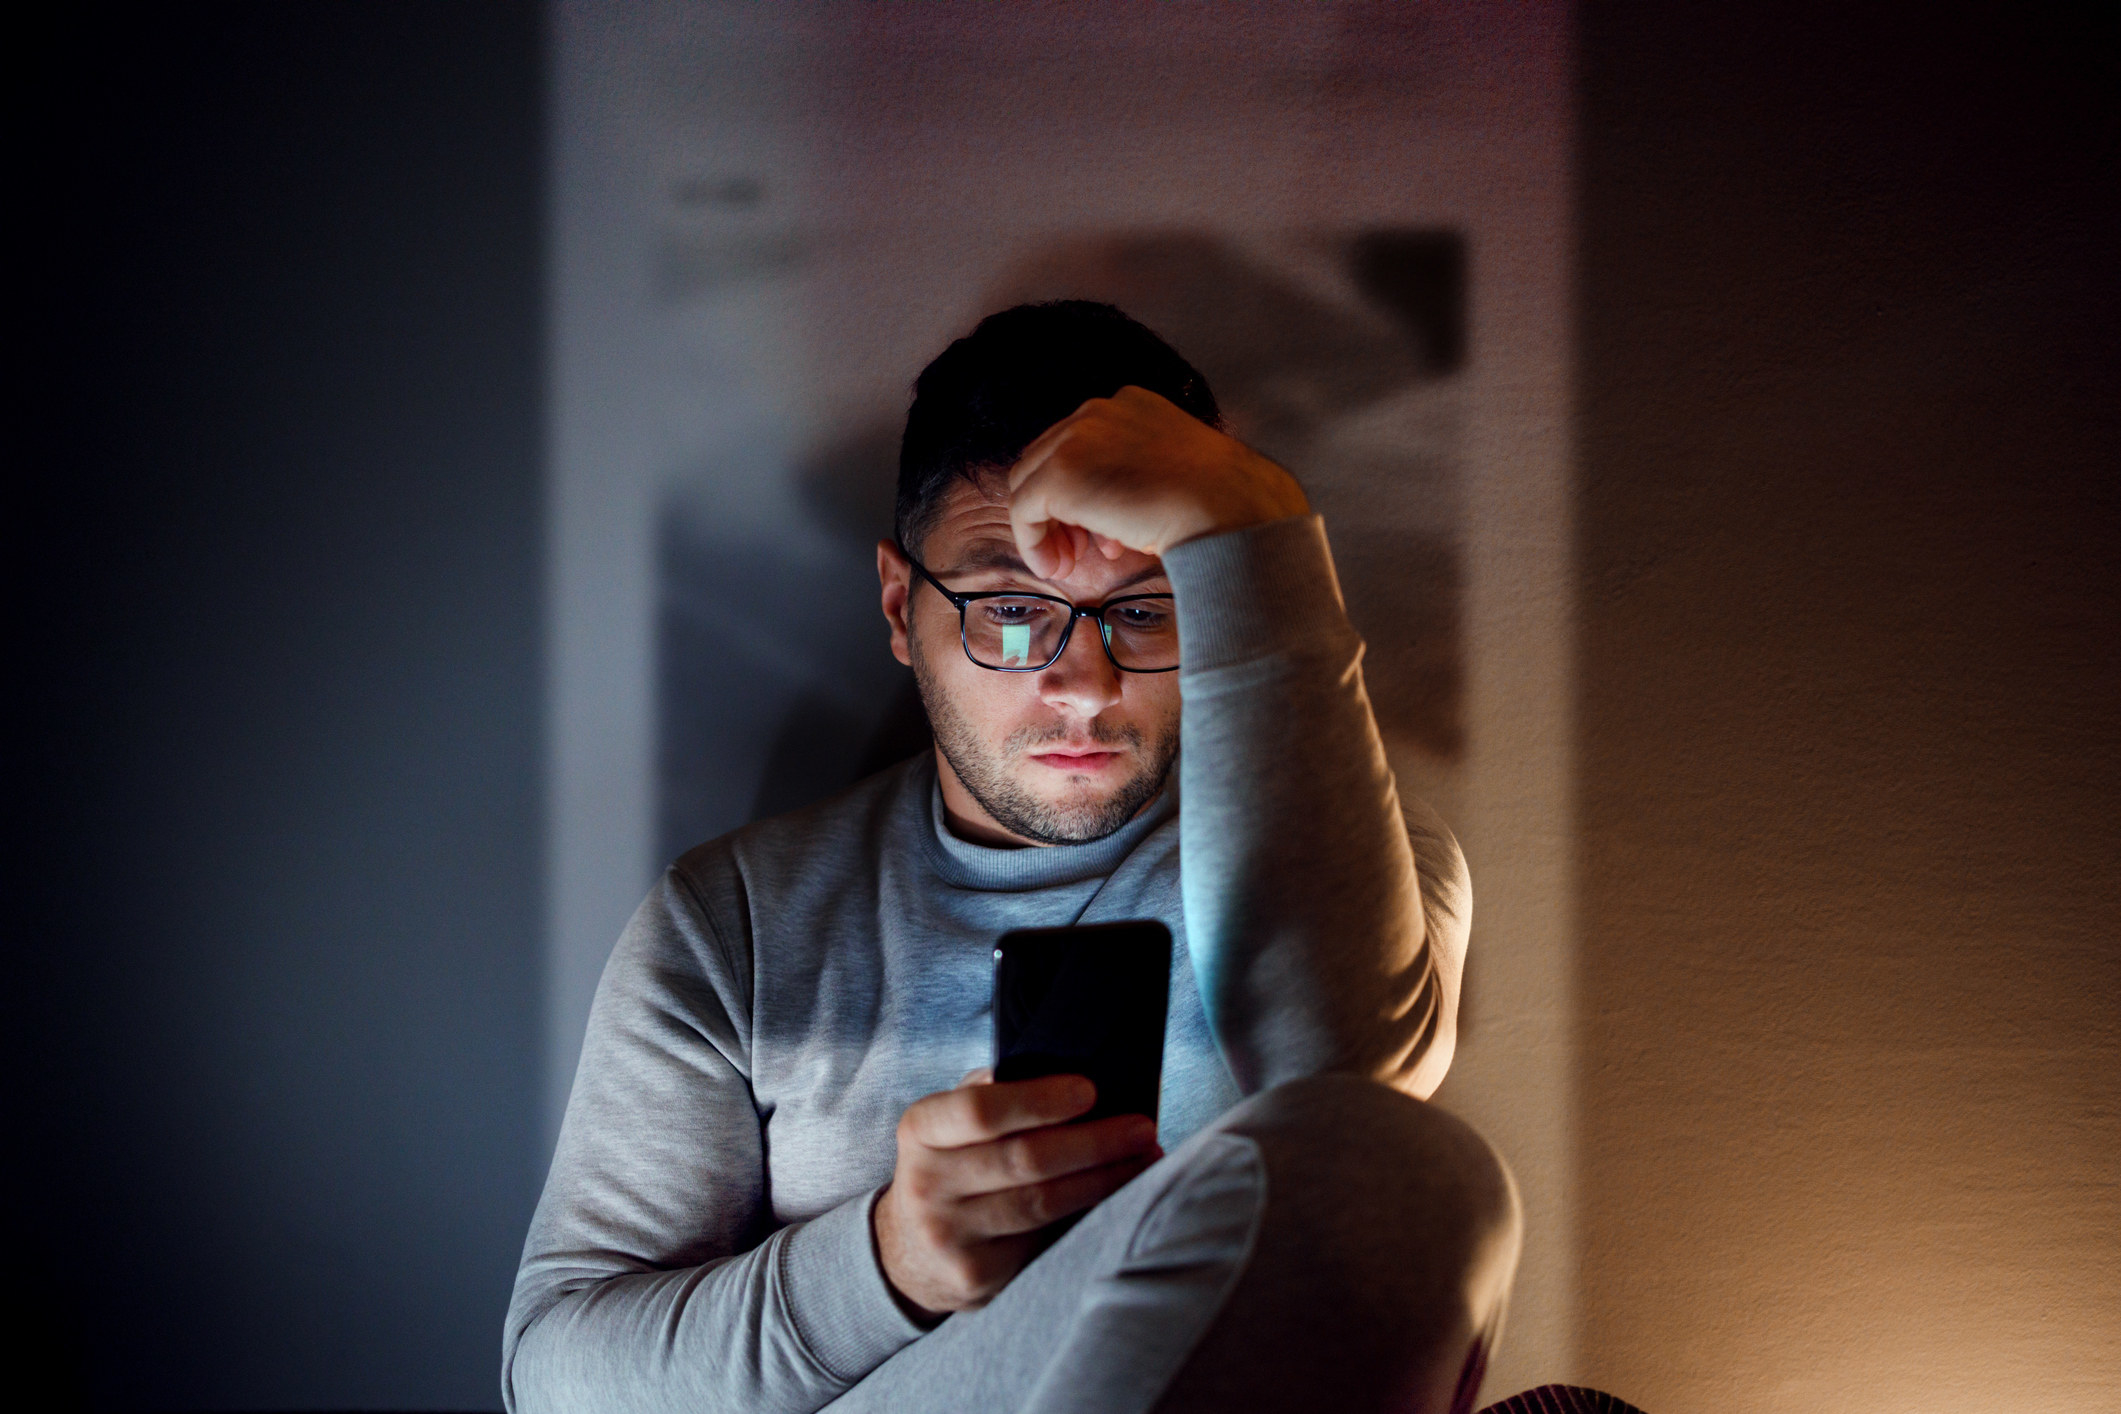 Person looking at their phone in a dark room and feeling bad about themself